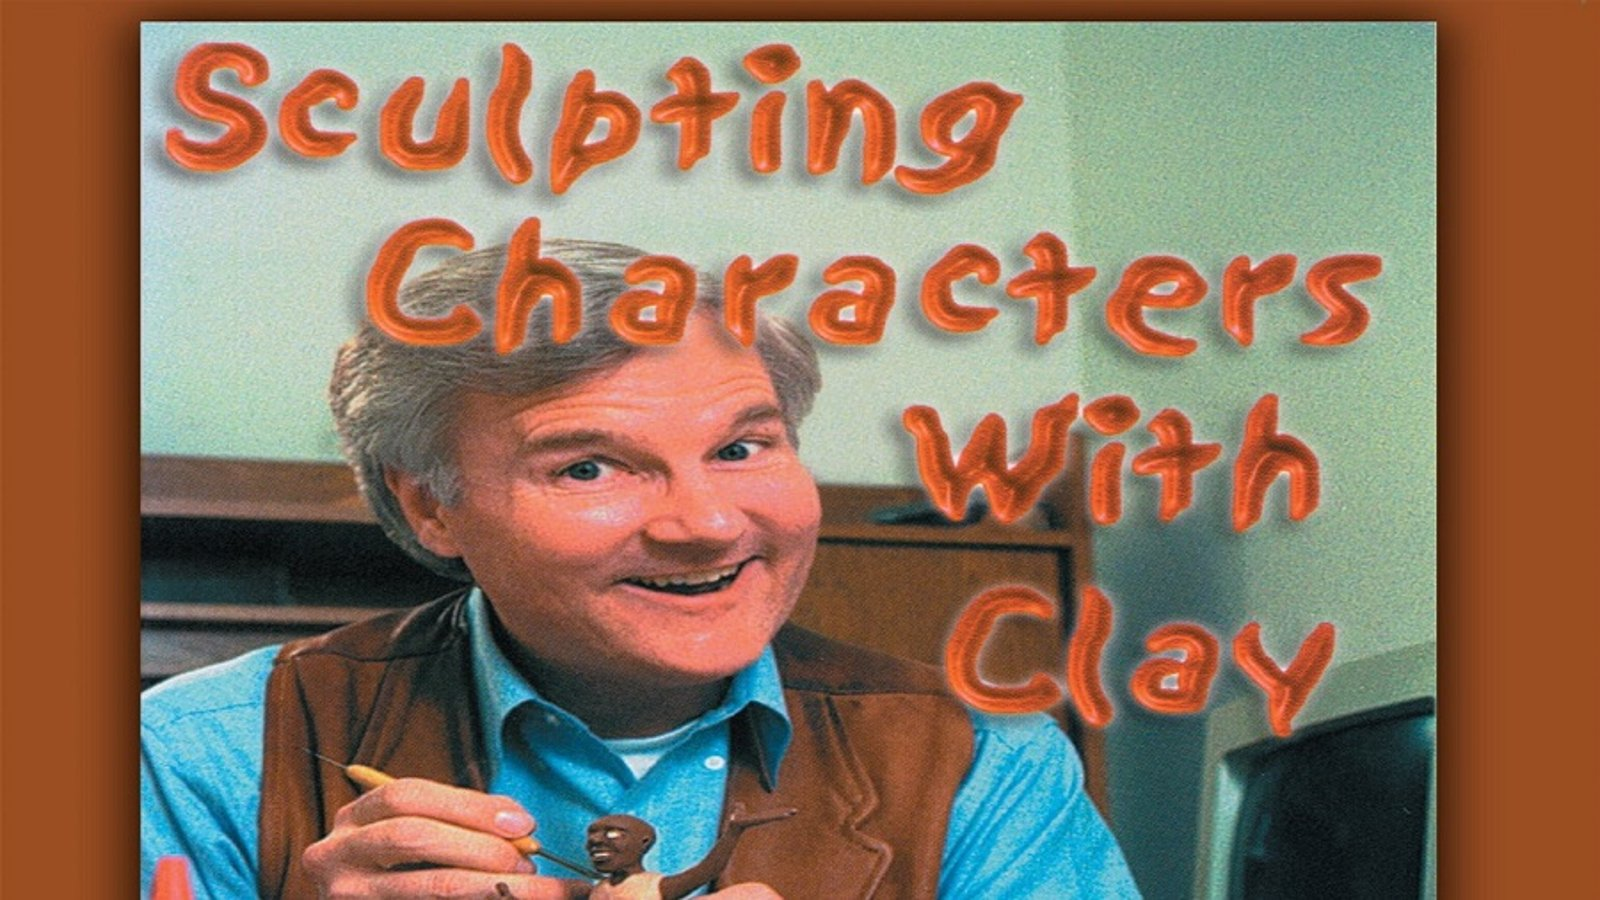 Beginners Guide To Animation - Sculpting Characters With Clay